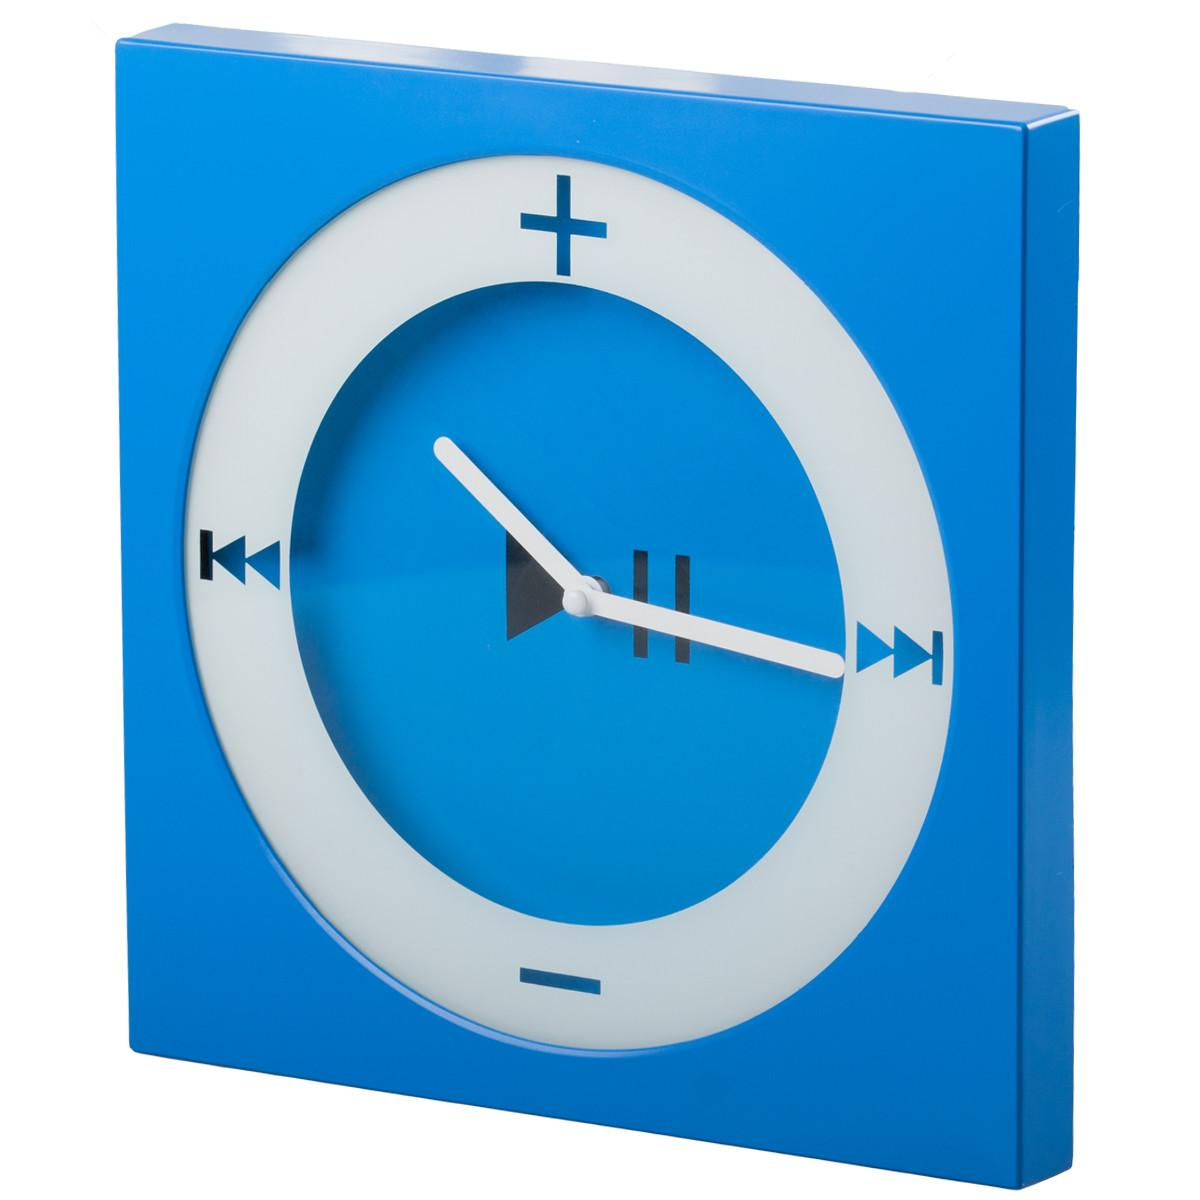 Edgevantage Trendy Wall Clock Pop Art Decorative Square